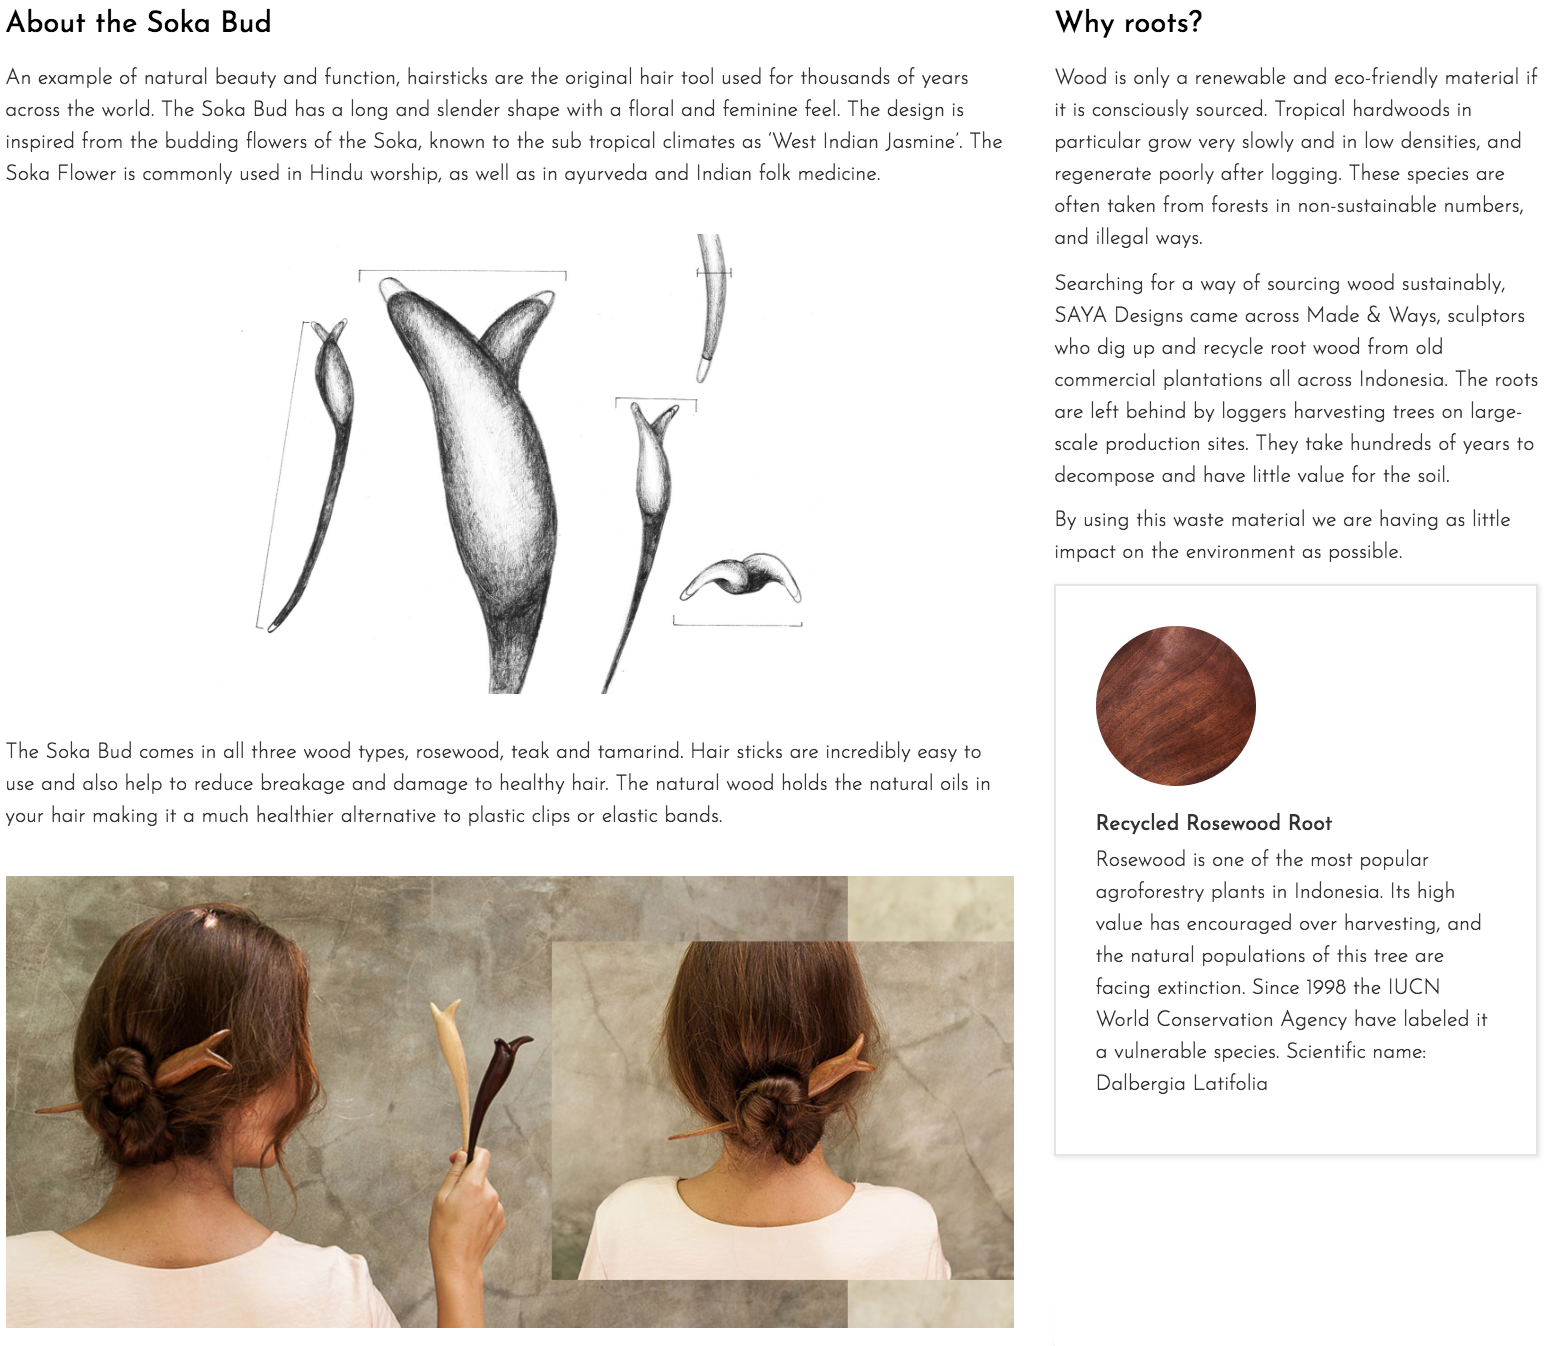 About the Soka Bud hairstick